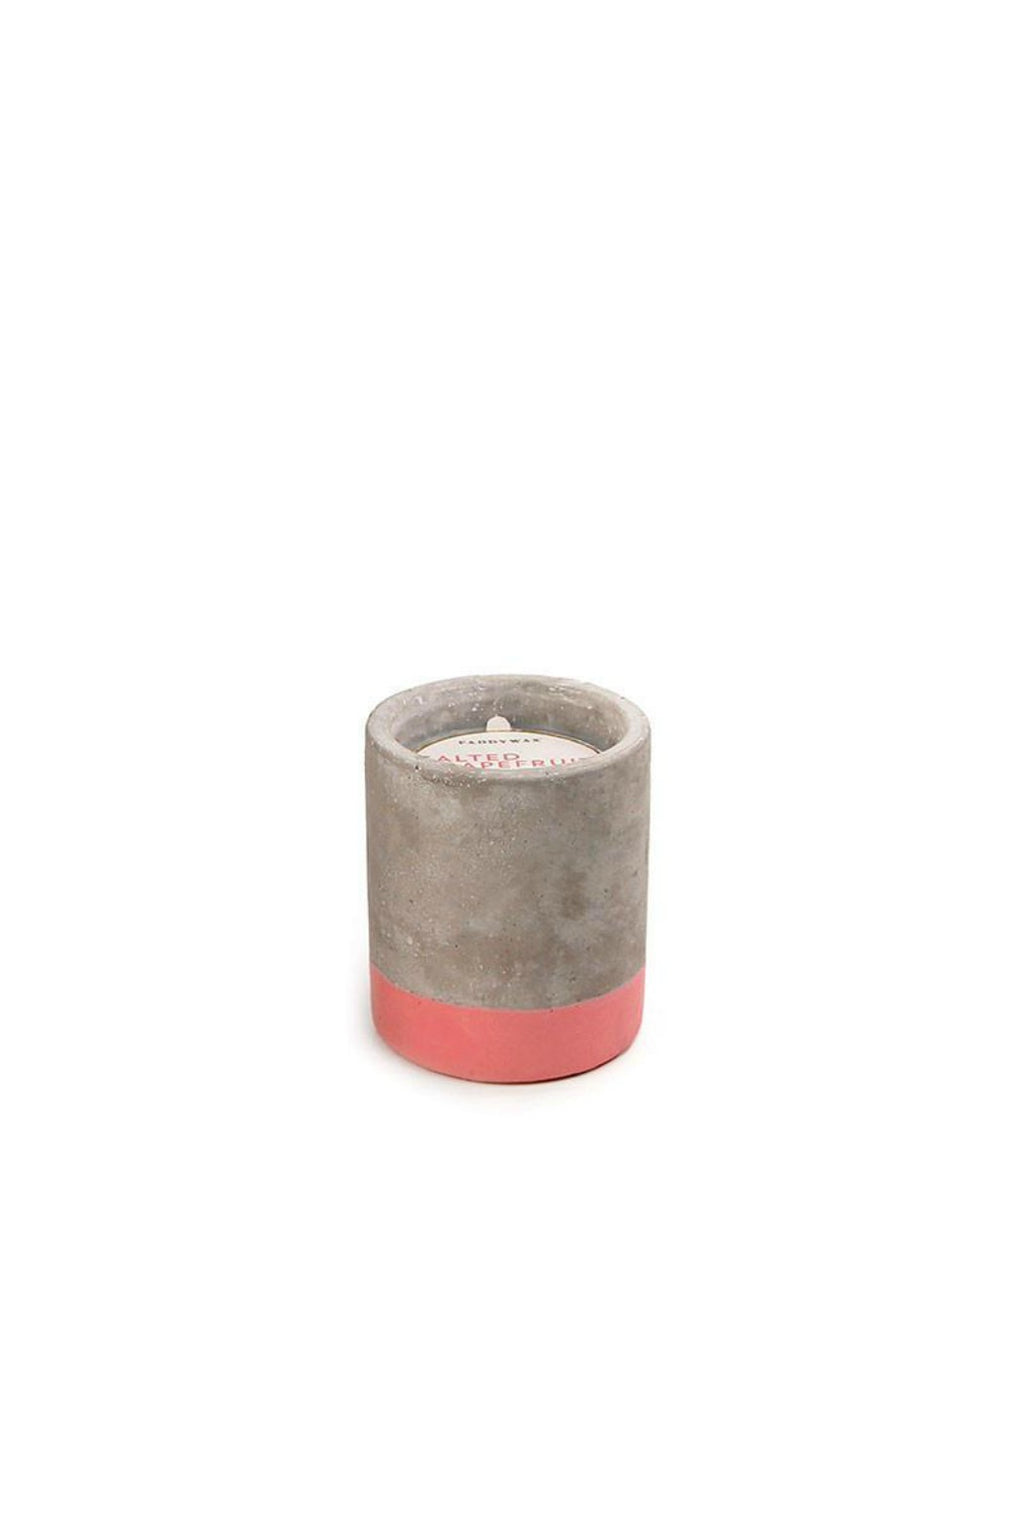 Pattywax Urban Concrete - Salted Grapefruit Candle